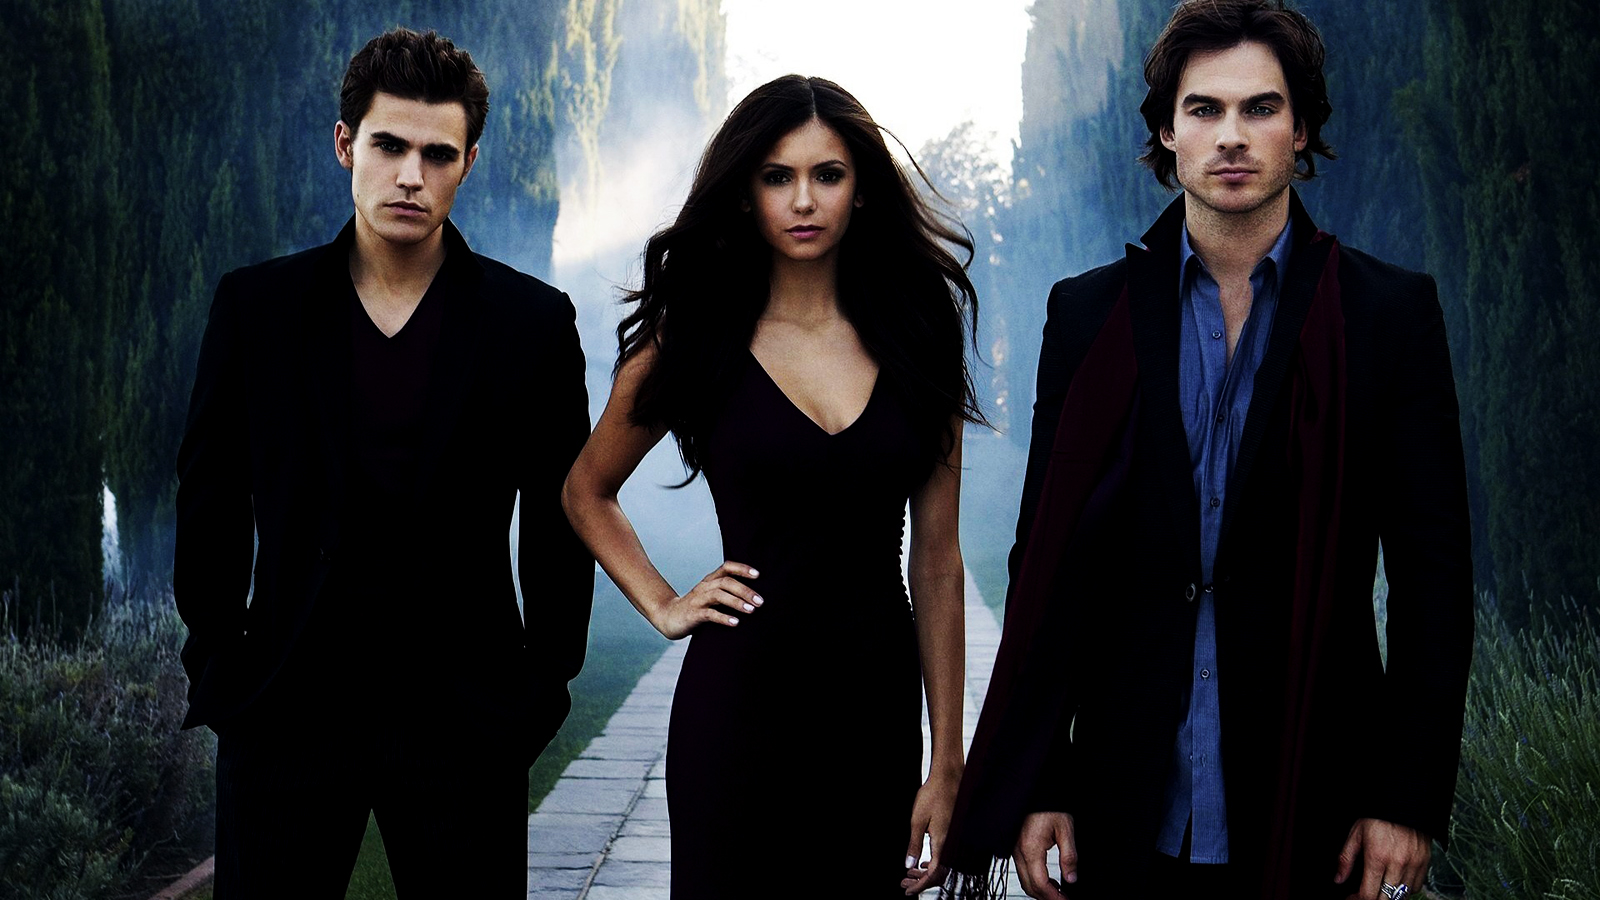 Vampire Diaries Characters HD Wallpapers HD Wallpapers Backgrounds 1600x900